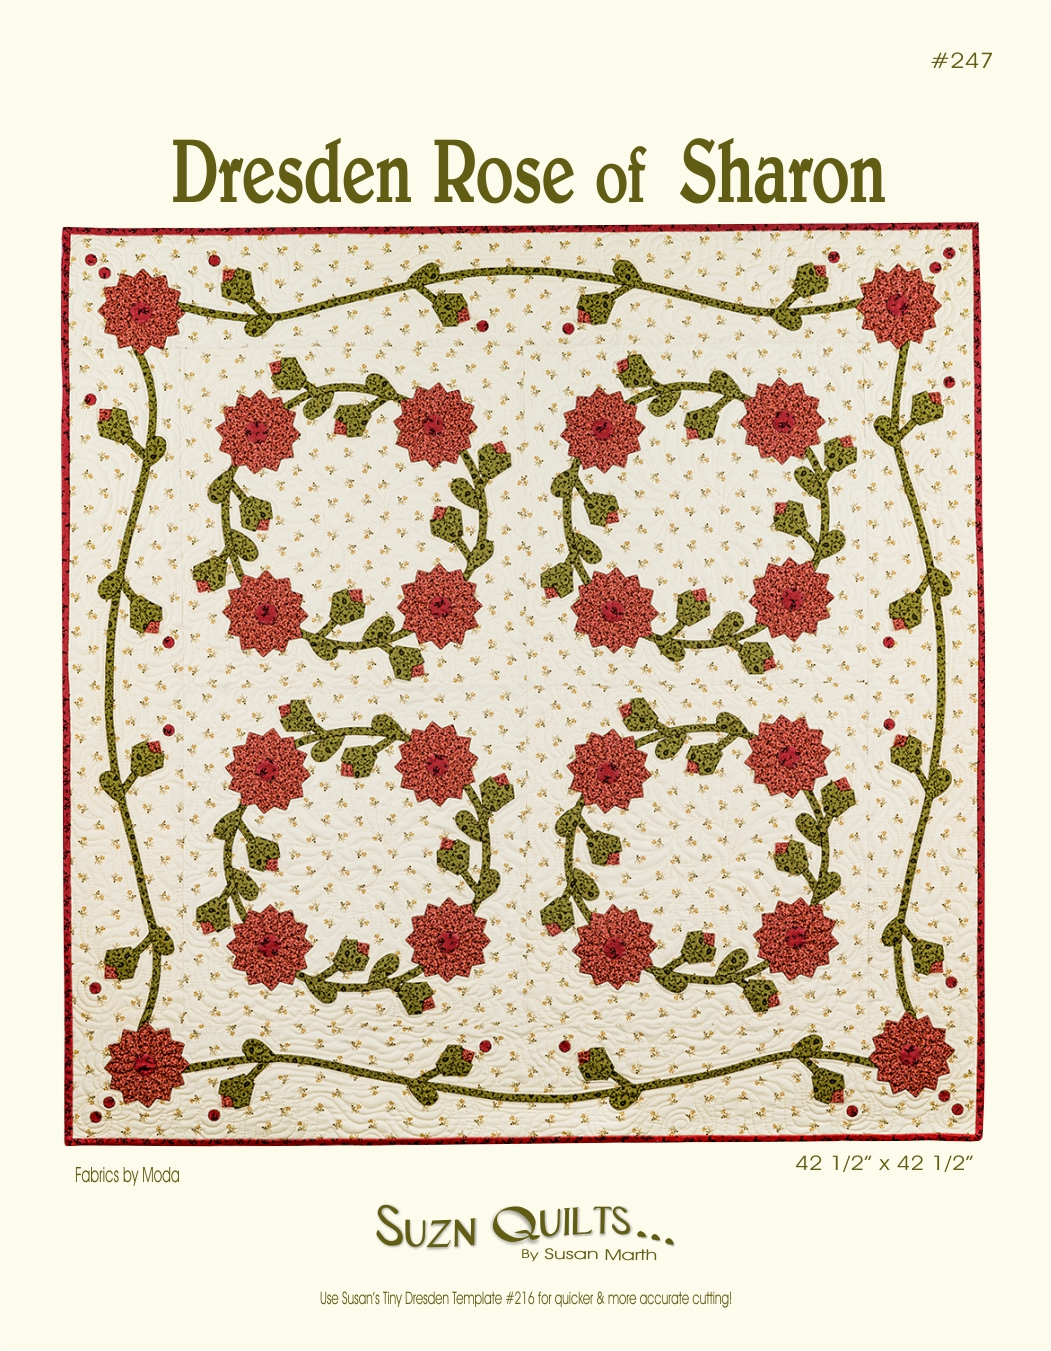 Suzn_Quilts_Dresden_Rose_of_Sharon_247_cover_small_web.jpg